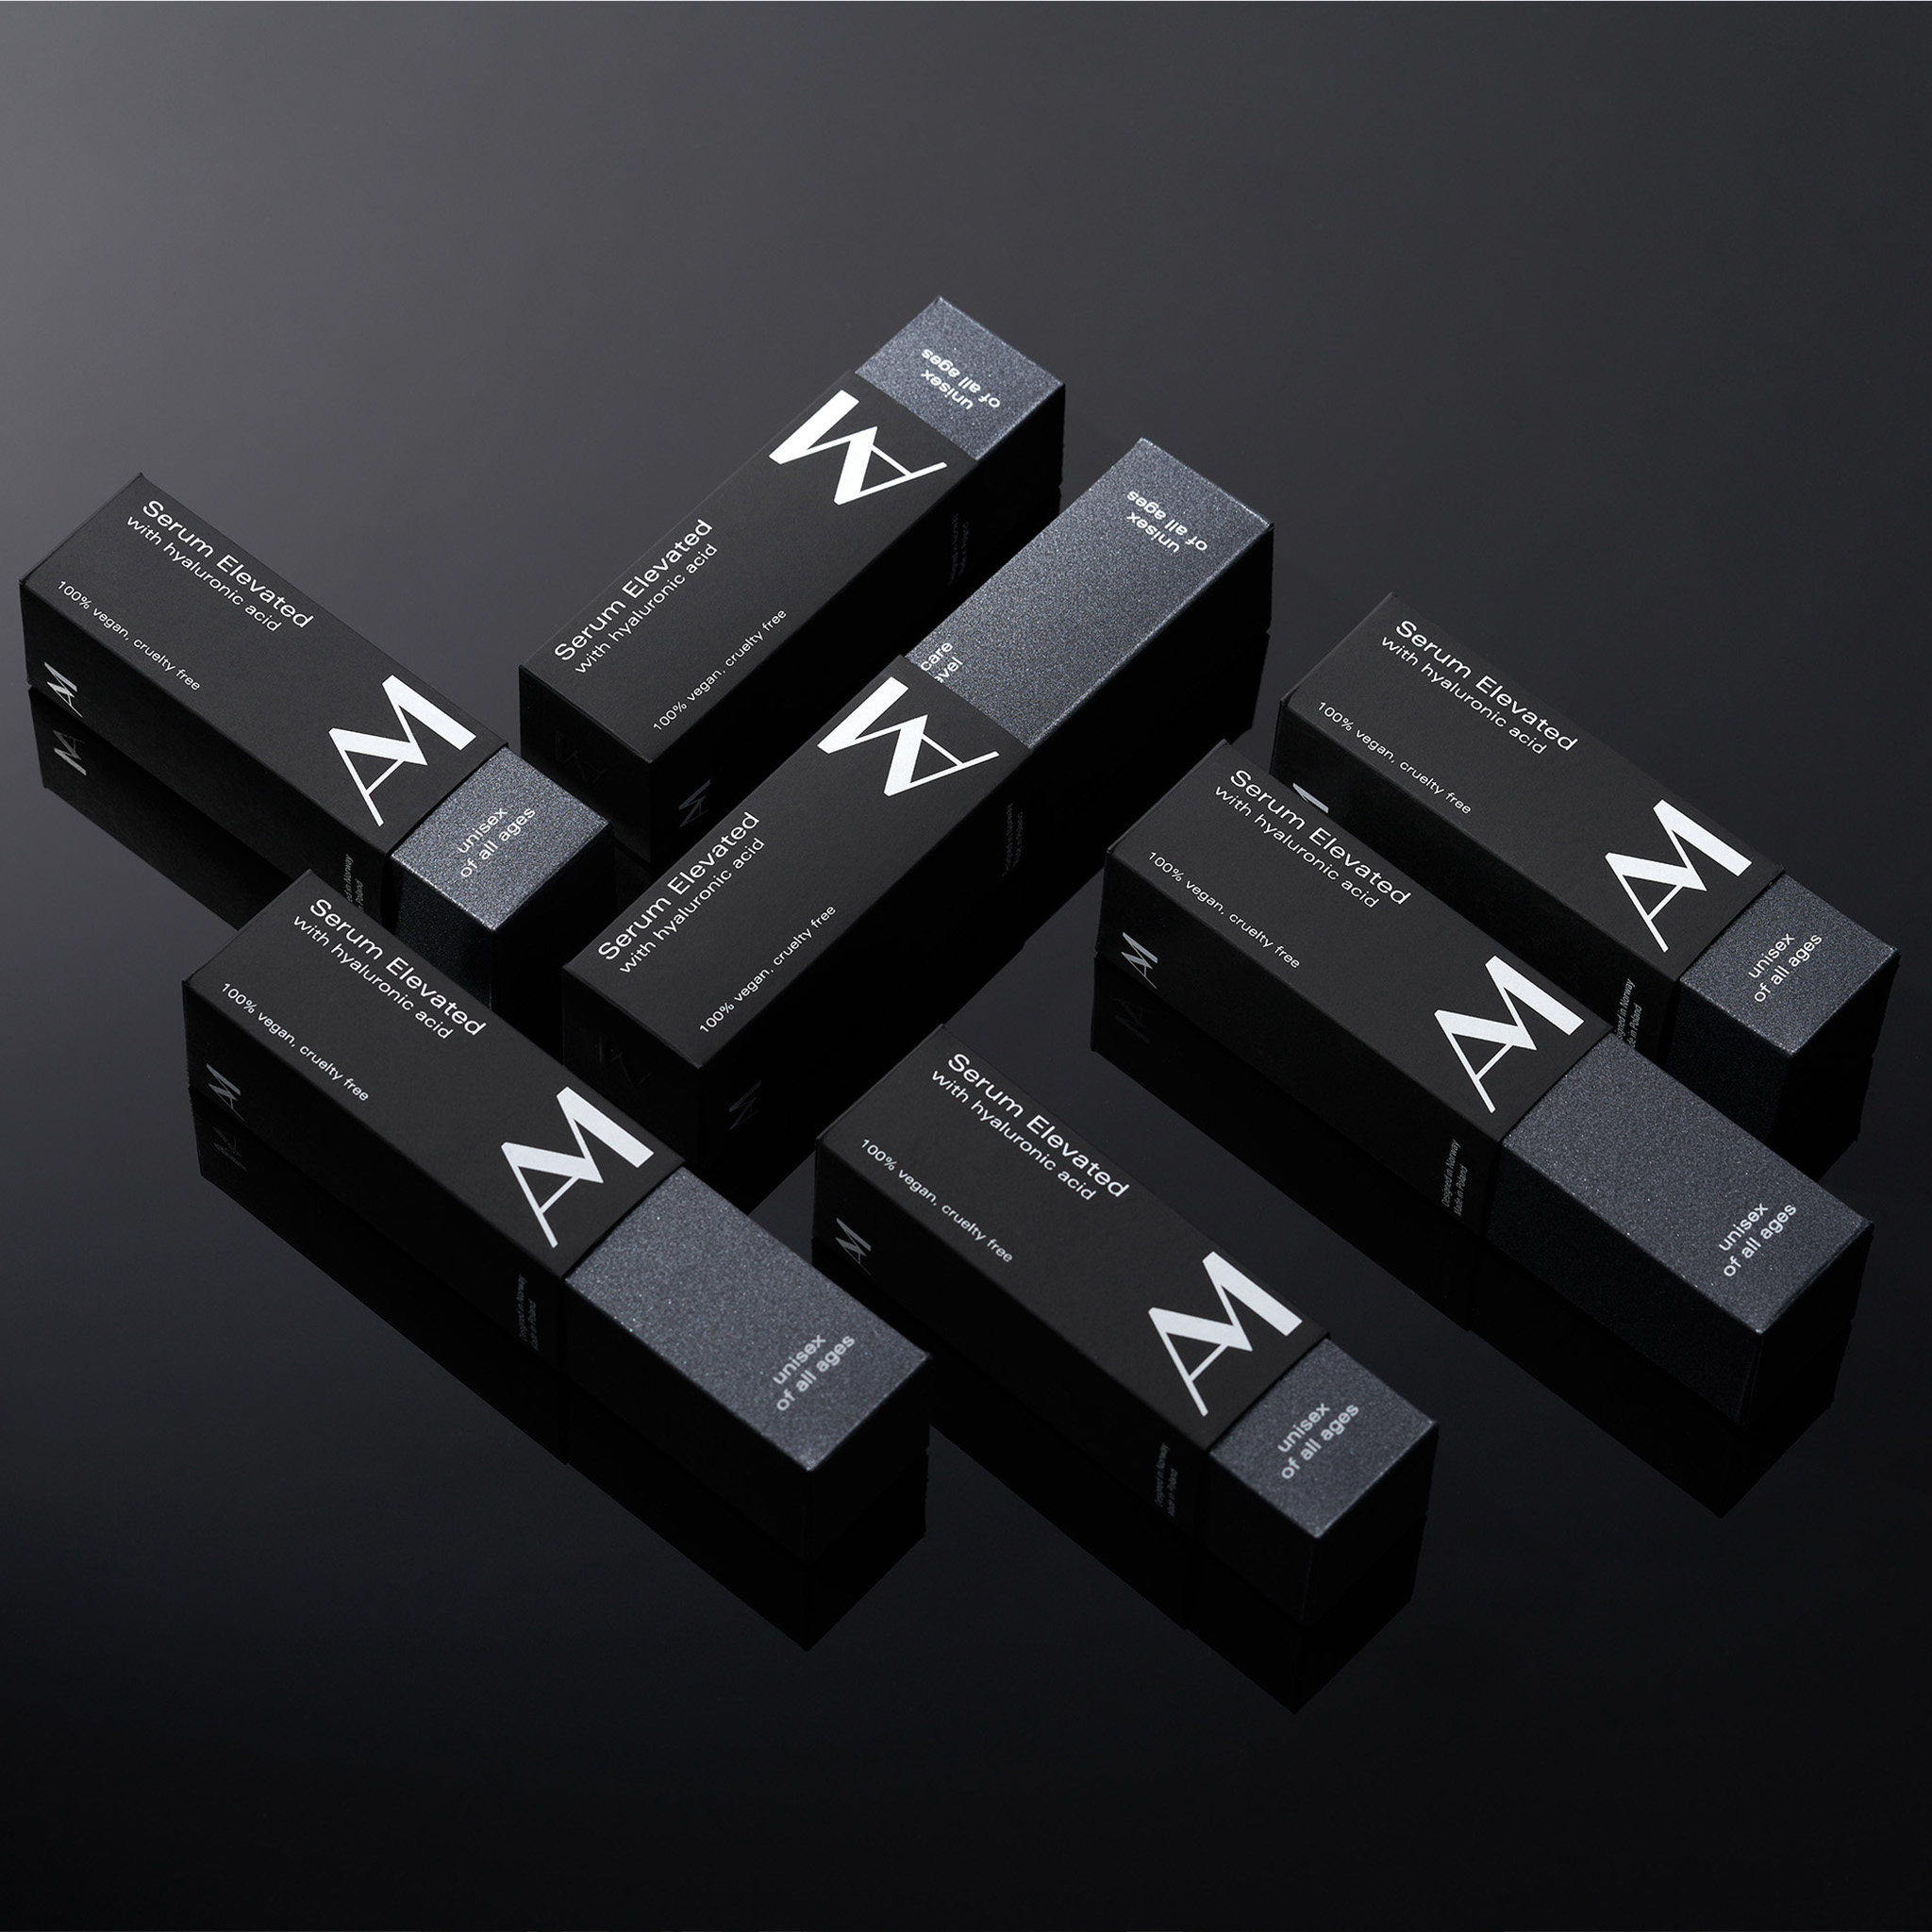 AM Serum Elevated Brand Identity and Packaging Design Created by Motyw Studio